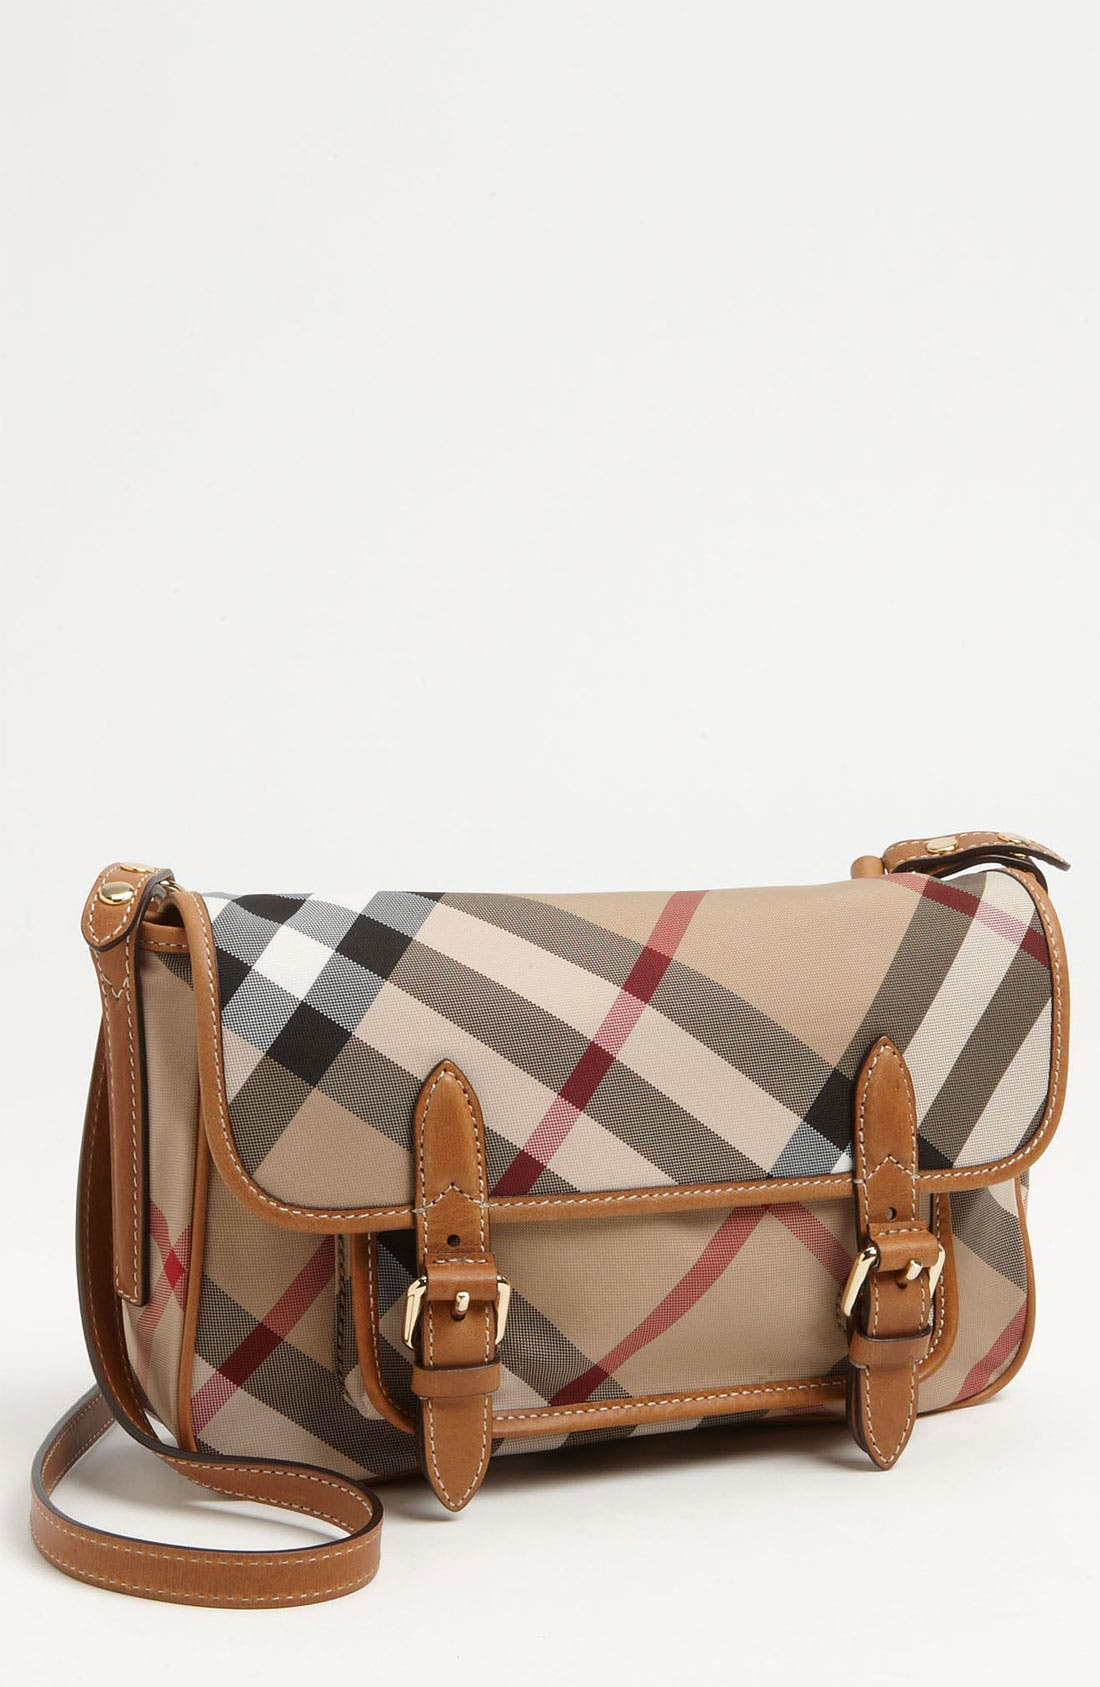 Main Image - Burberry 'Liv' Check Print Crossbody Bag (Girls)